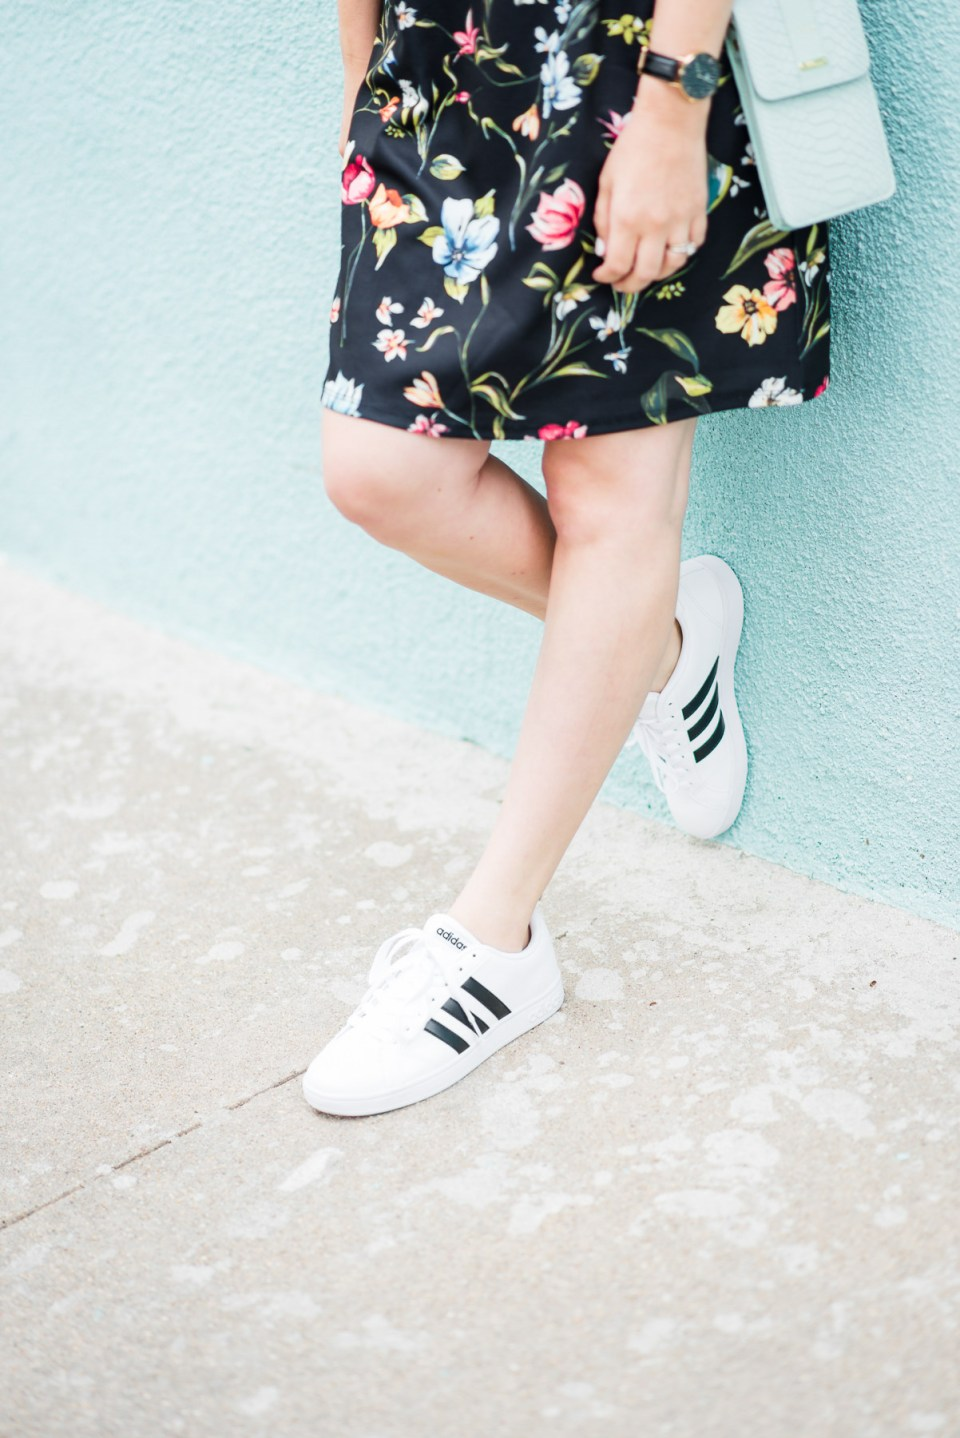 Floral_Shirt_Dress_Adidas_Sneakers-11